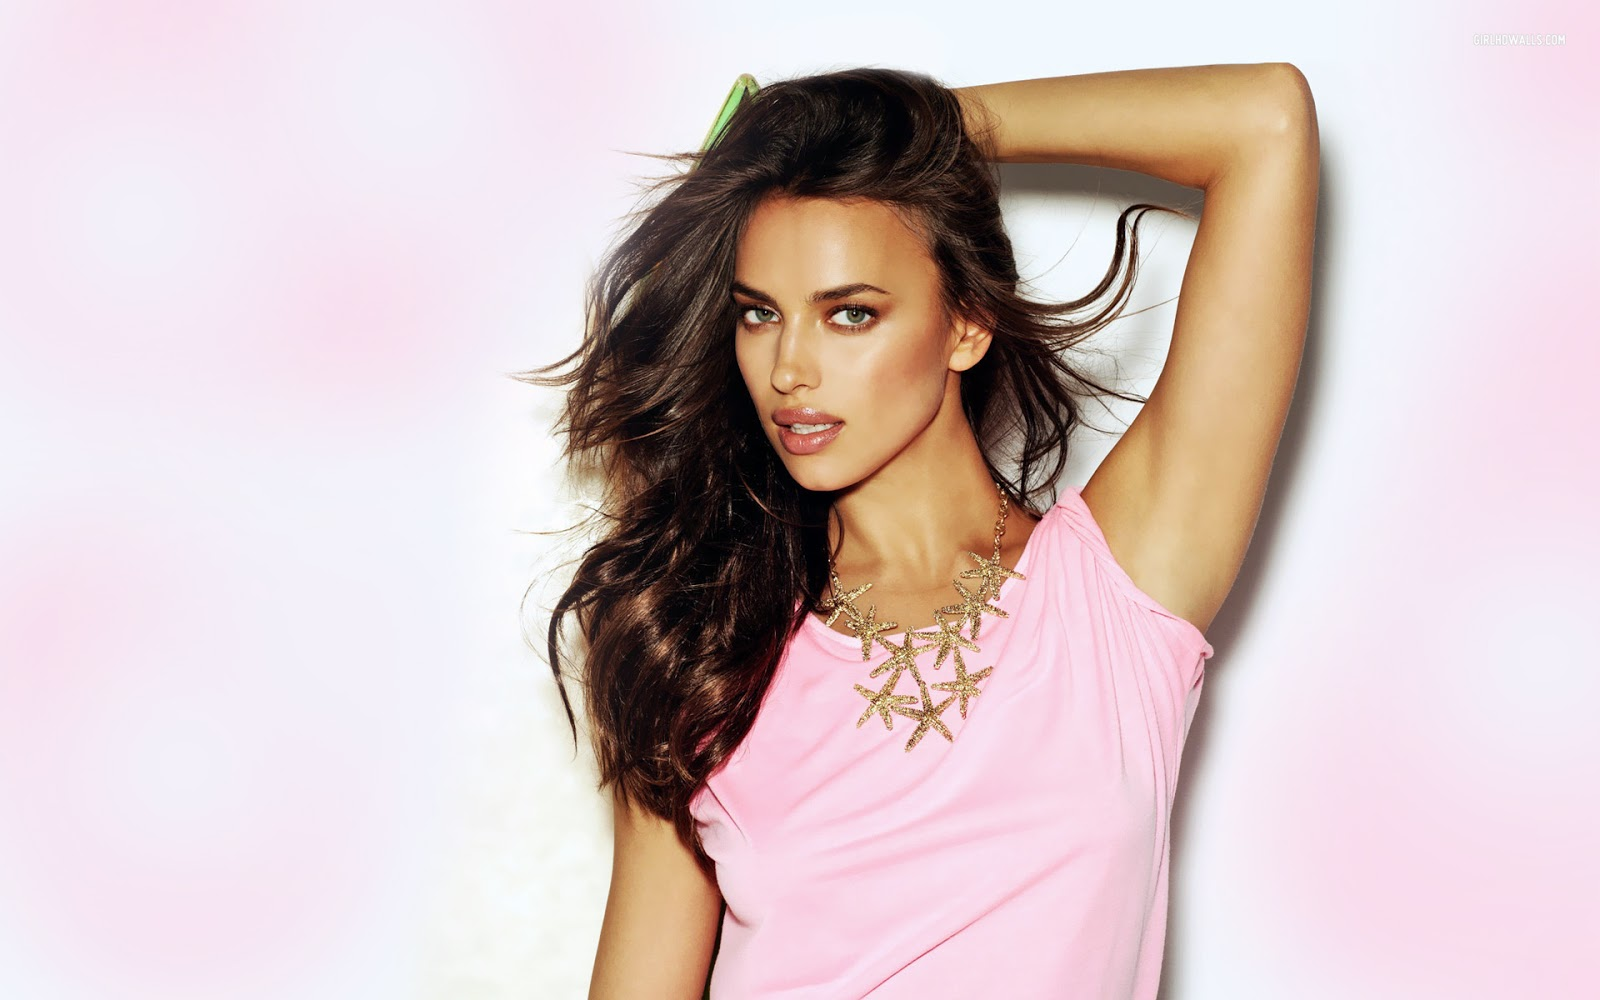 Model Y Hd: Irina Shayk Hot Russian Model HD Wallpaper